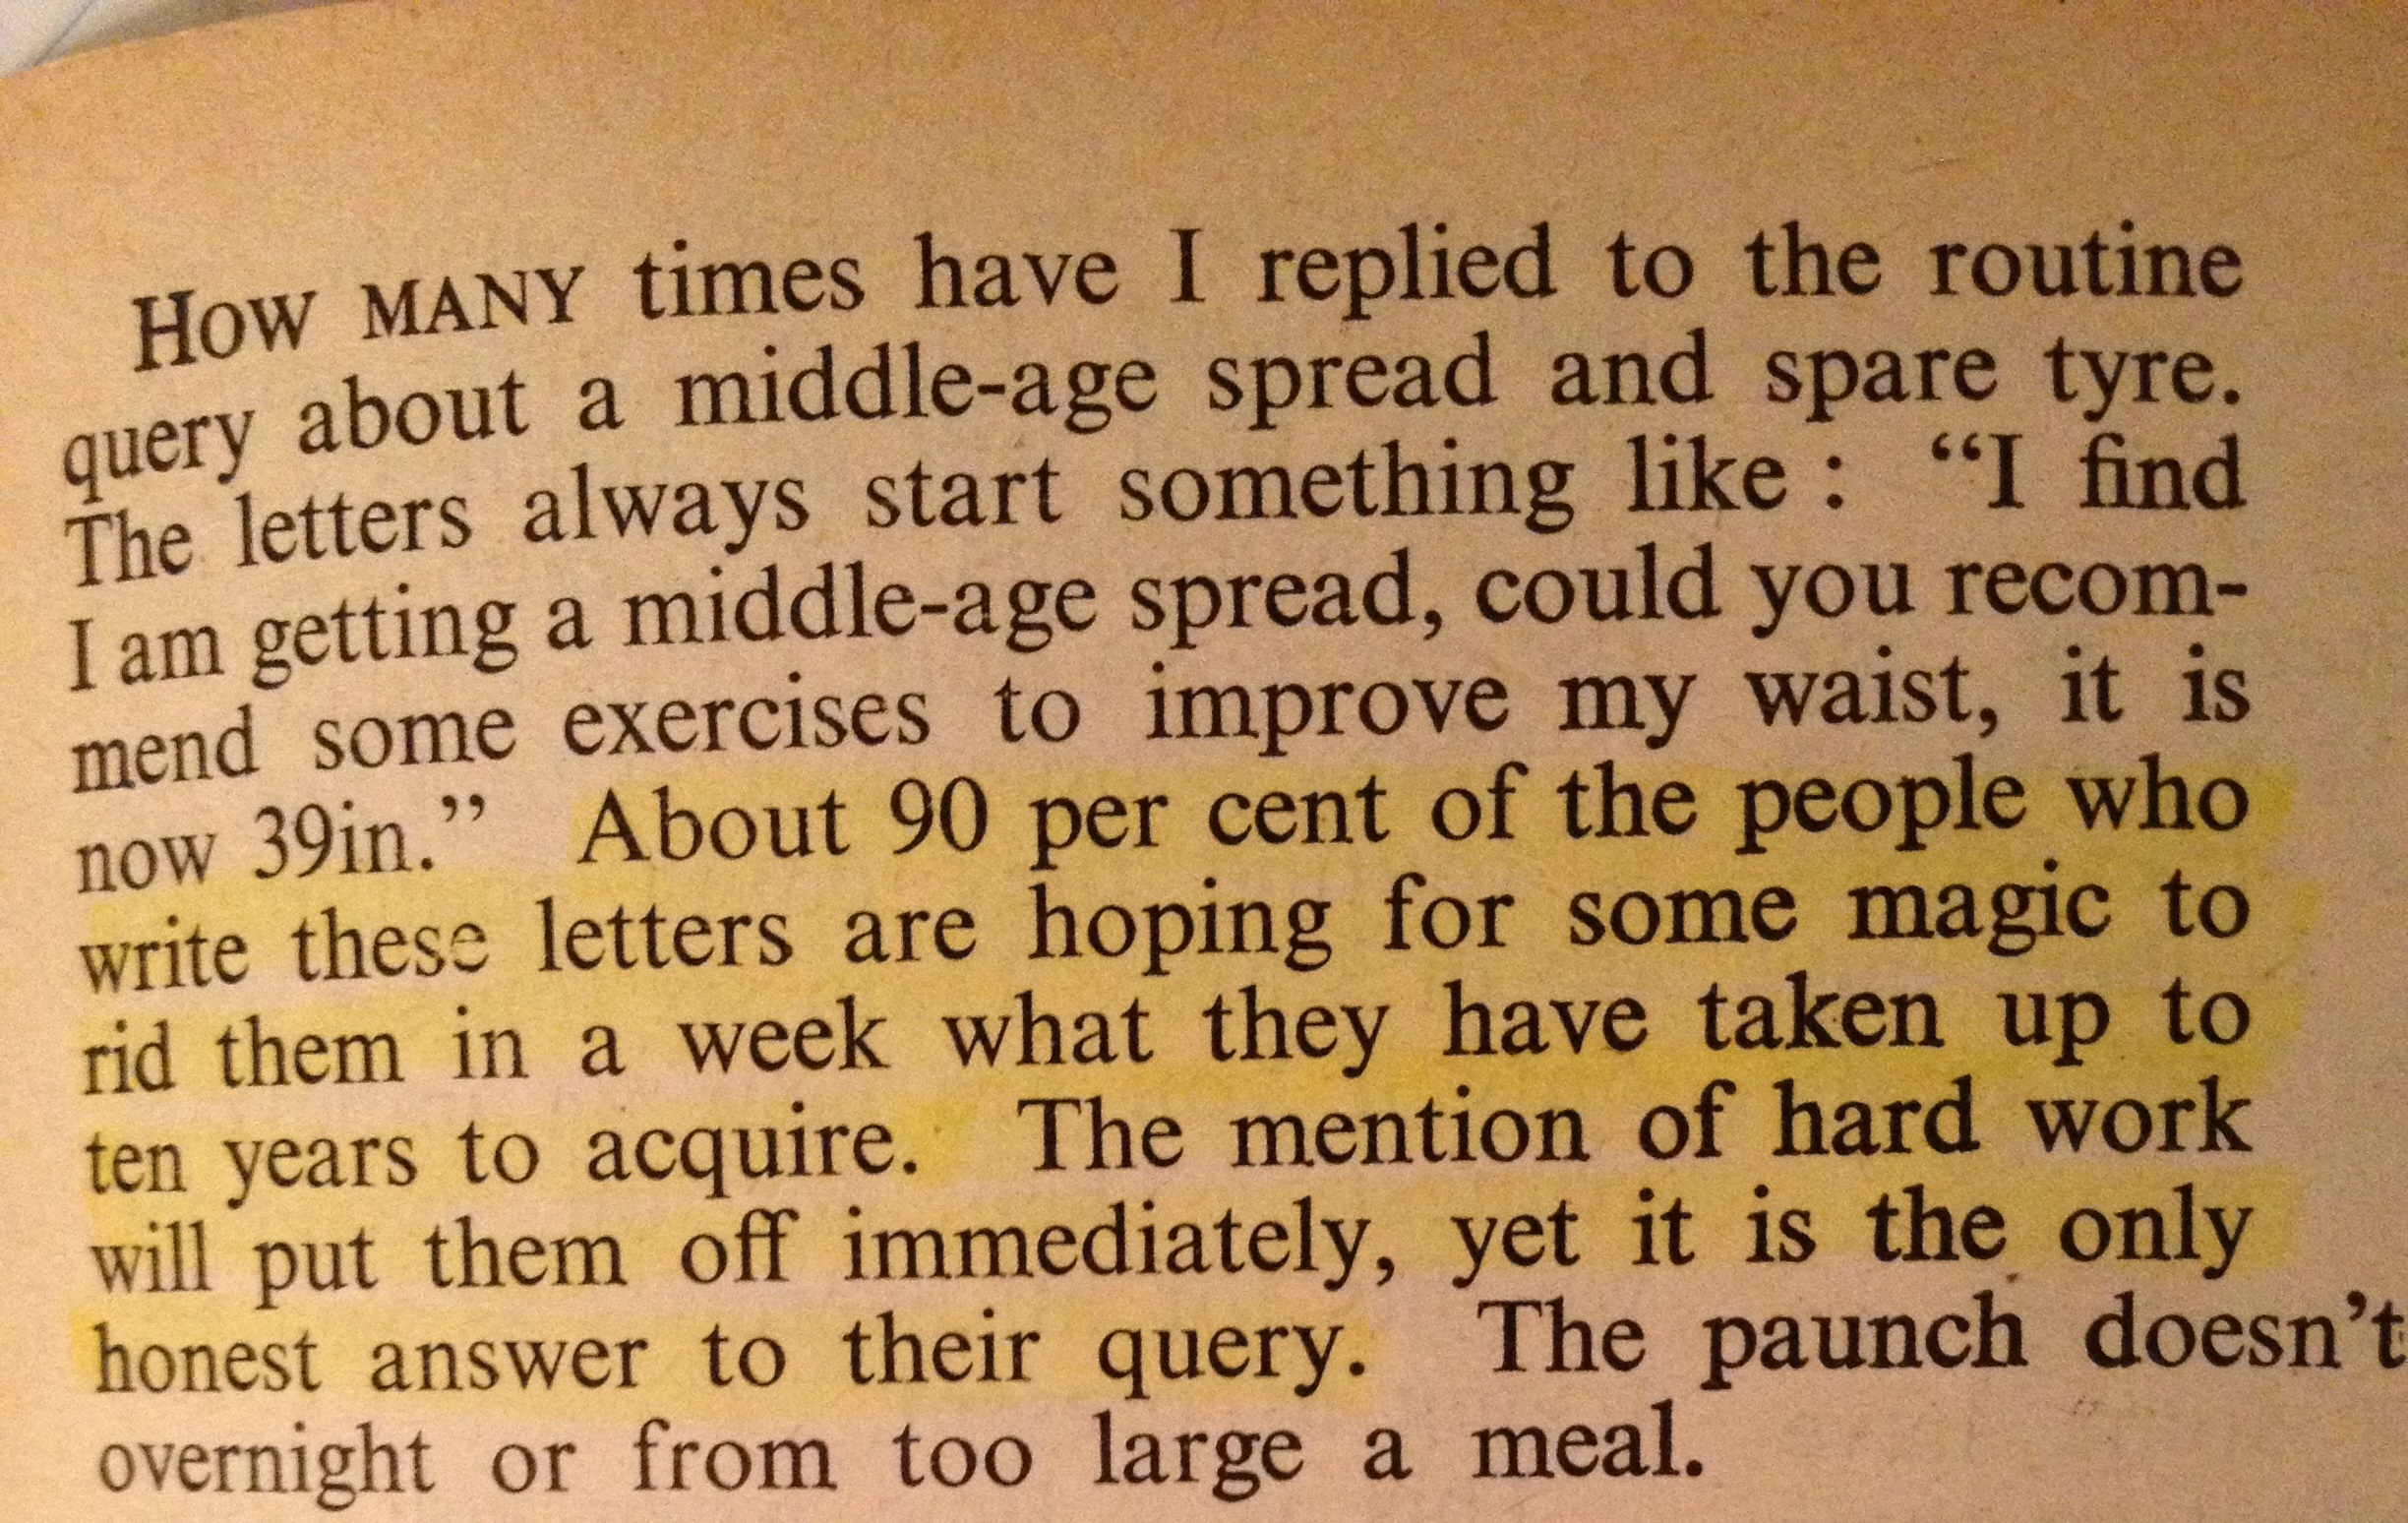 The mention of hard work will put them off immediately, yet it is the only honest answer to their query - Health & Strength Magazine 1963